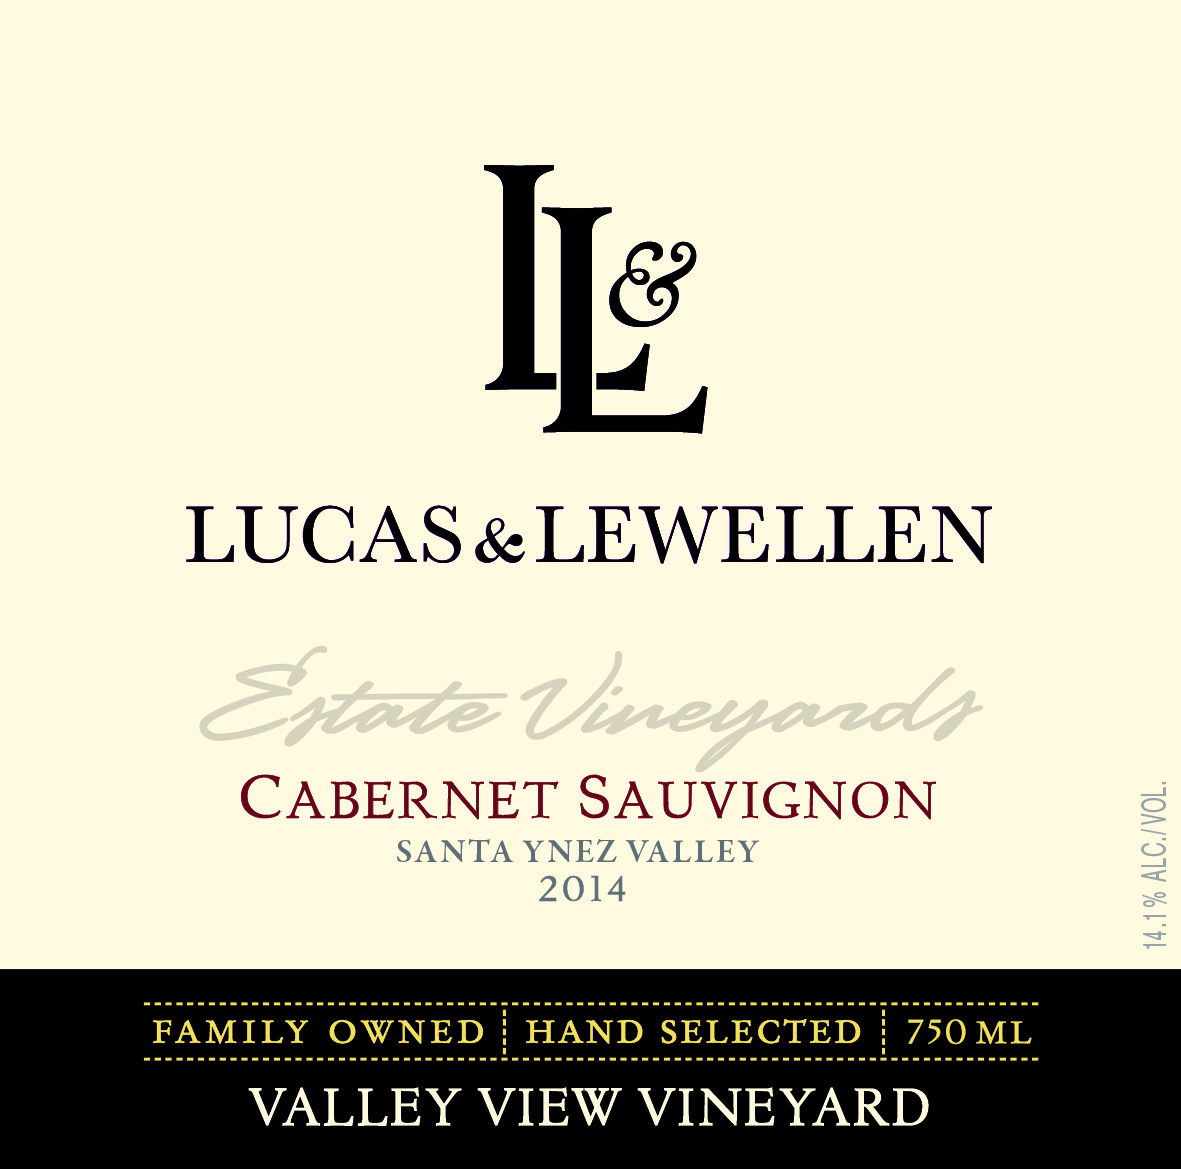 Lucas & Lewellen Cabernet Sauvignon Valley View Vineyard